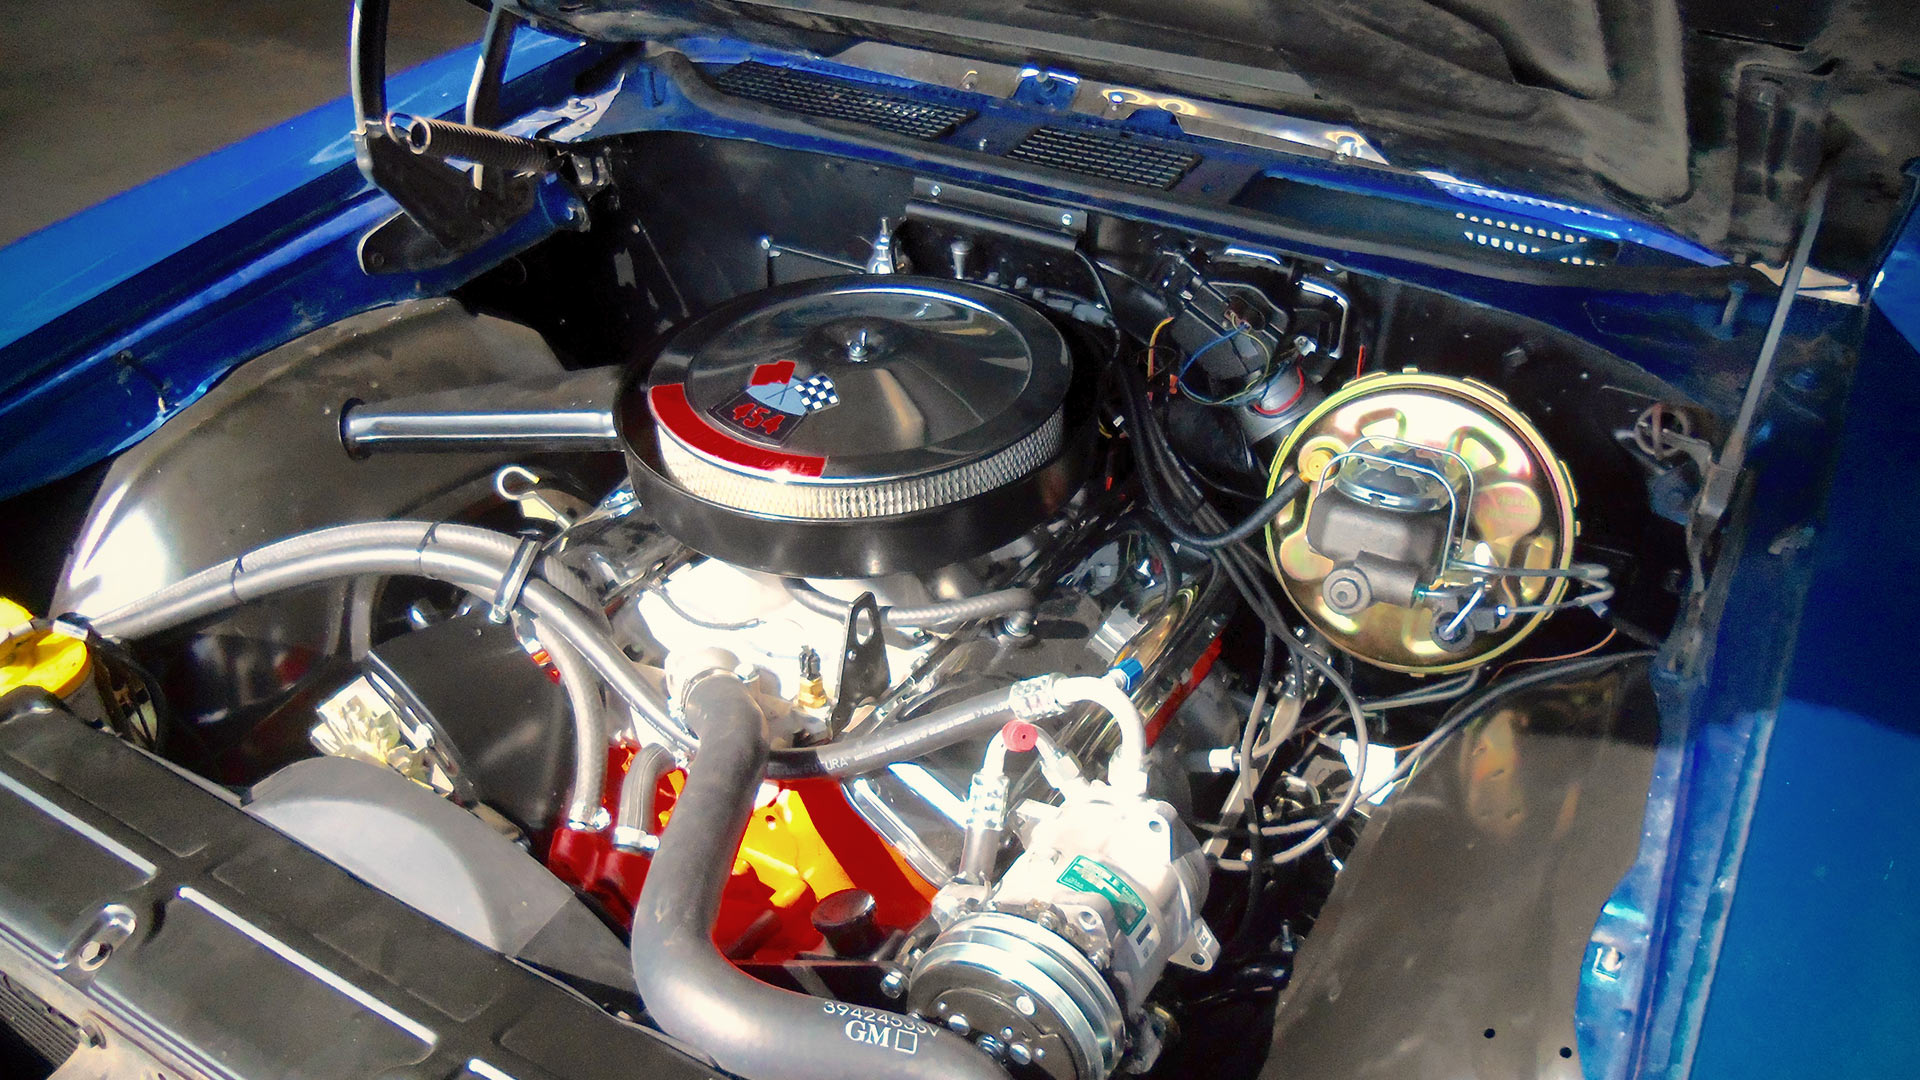 1970 Chevelle Daily Driver Restoration Part 1 70 Chevy Wiring For Alternator Power Mods Completed